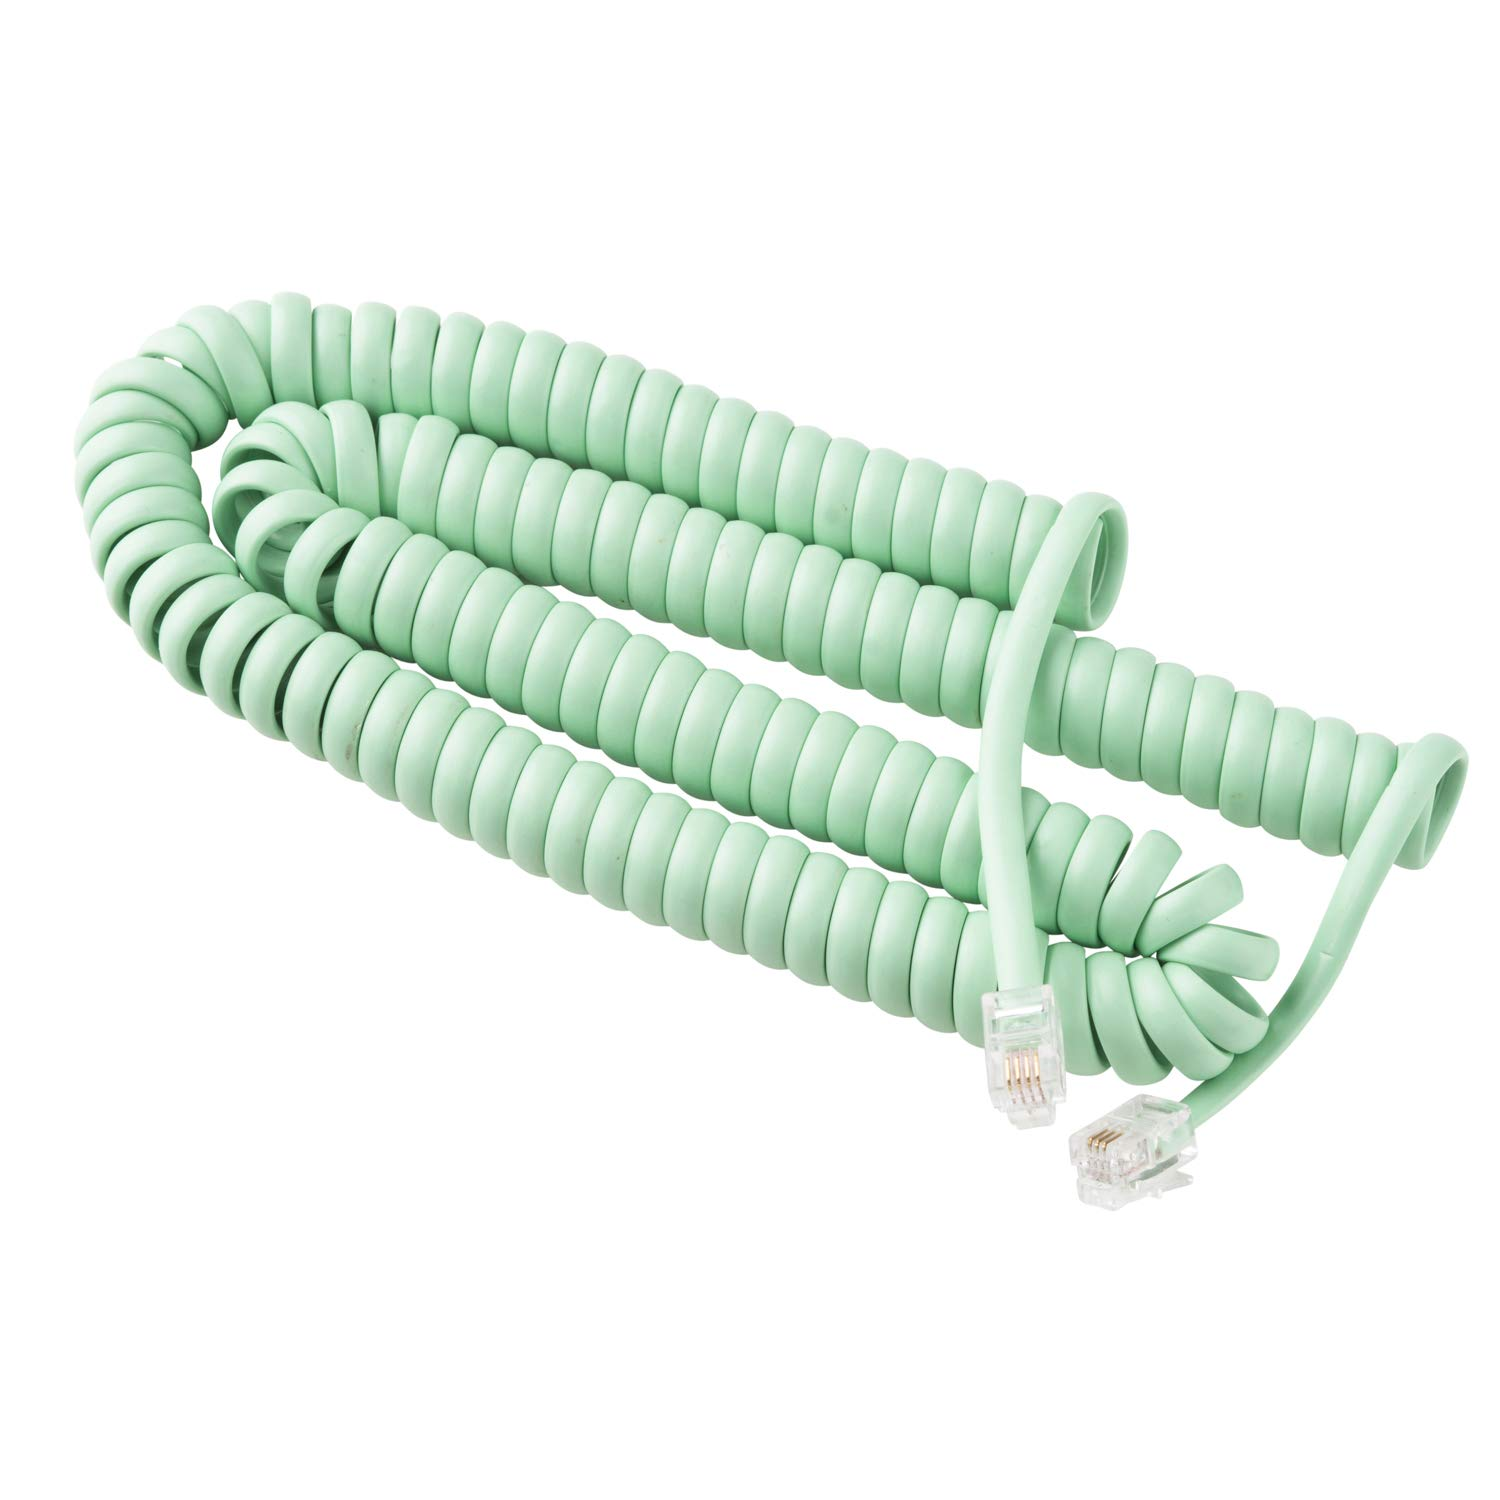 Phone Cord for Landline Phone – Tangle-Free, Curly Telephones Land Line Cord – Easy to Use + Excellent Sound Quality – Phone Cords for Landline in Home or Office (25ft) Color: Earth Day Green